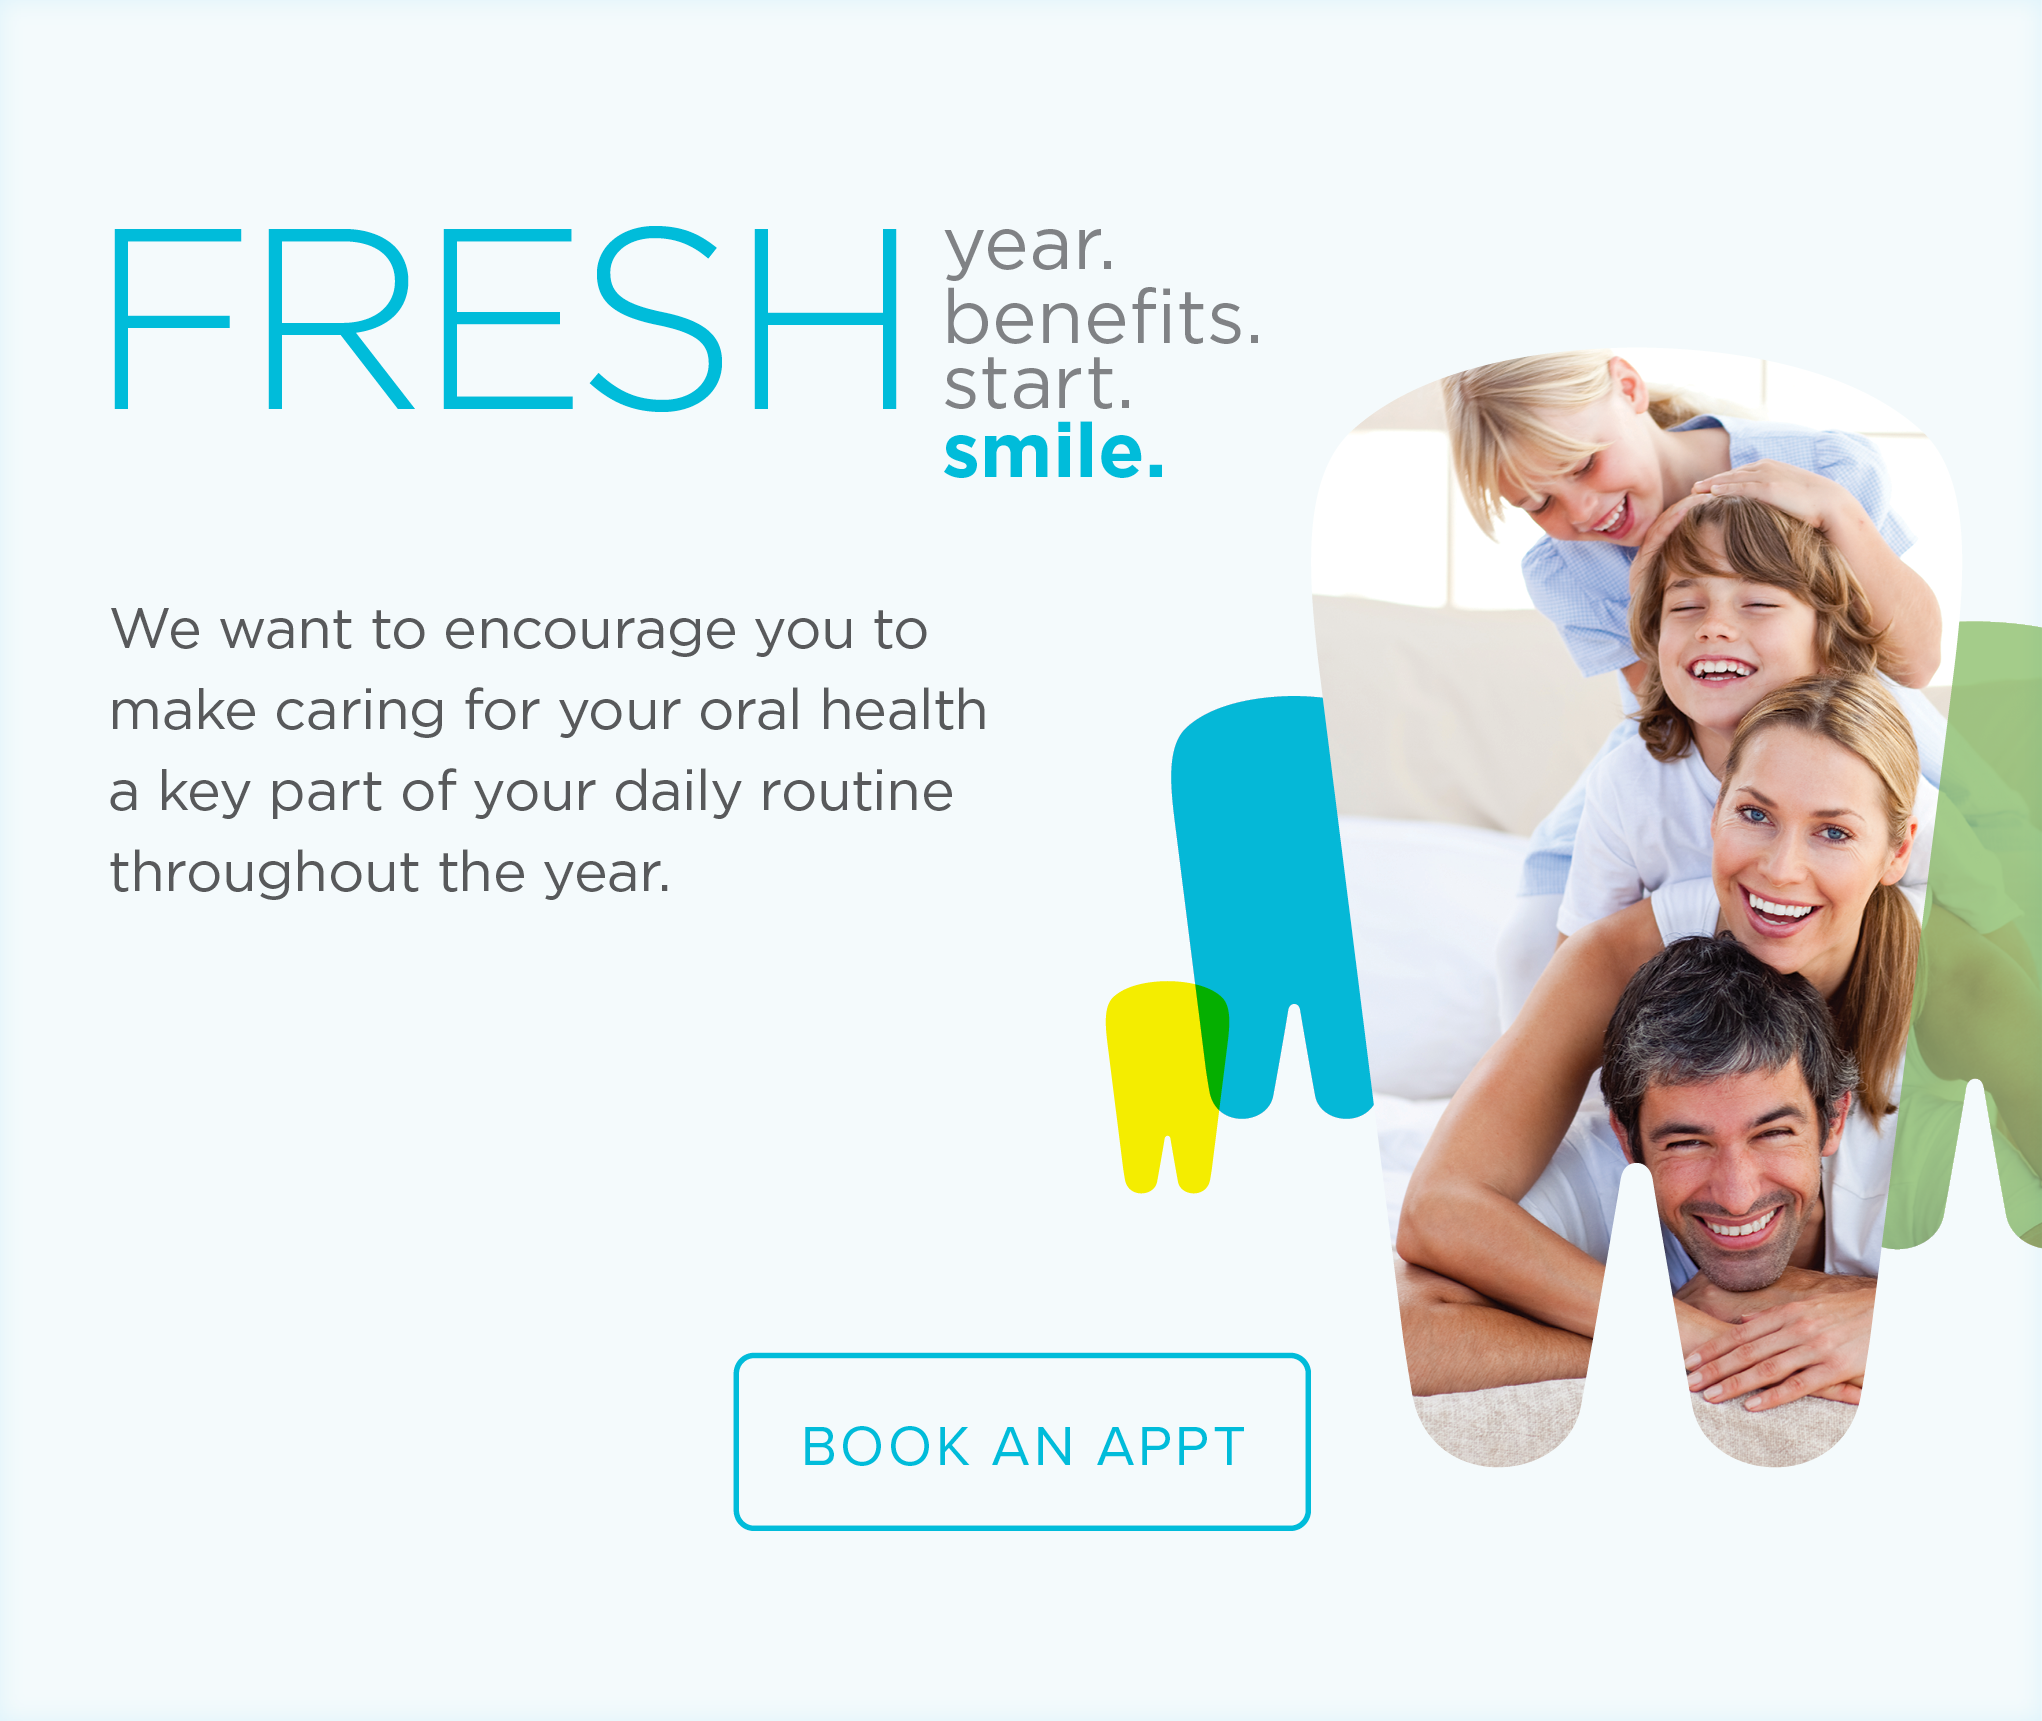 Pleasant Hill Smiles Dentistry - Make the Most of Your Benefits